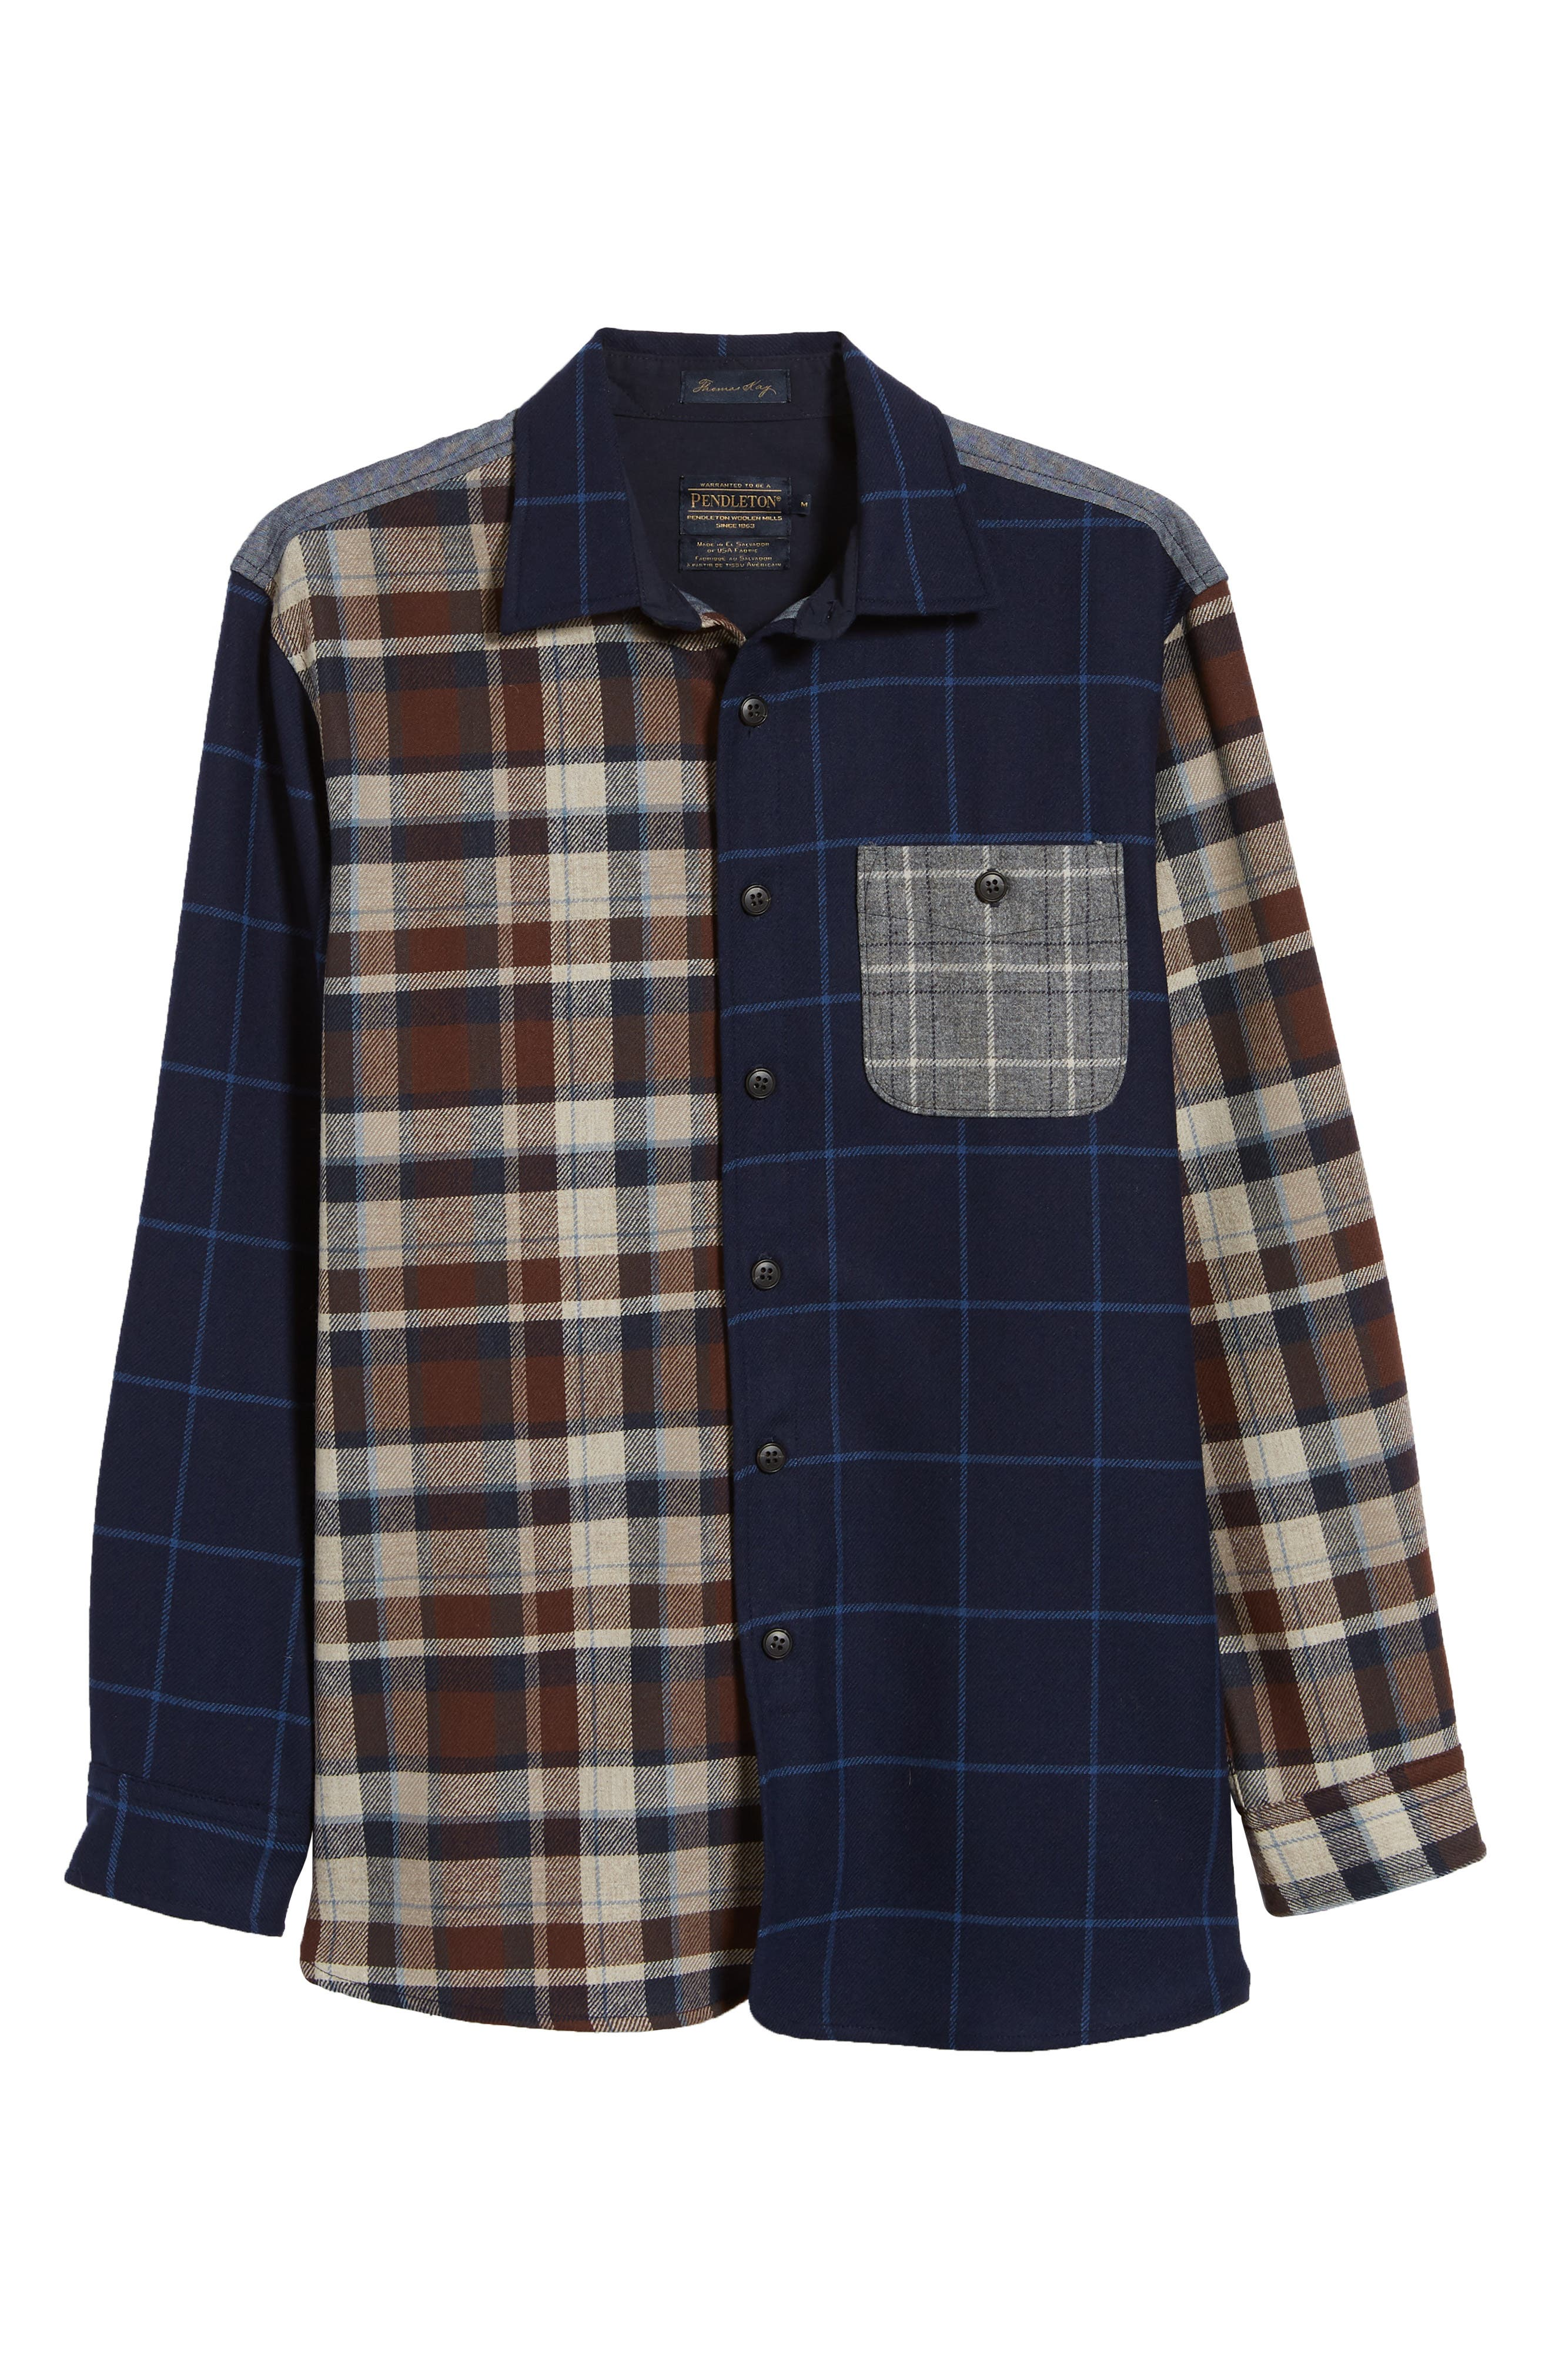 Pattern Block Wool Sport Shirt,                             Alternate thumbnail 5, color,                             MIX IT UP